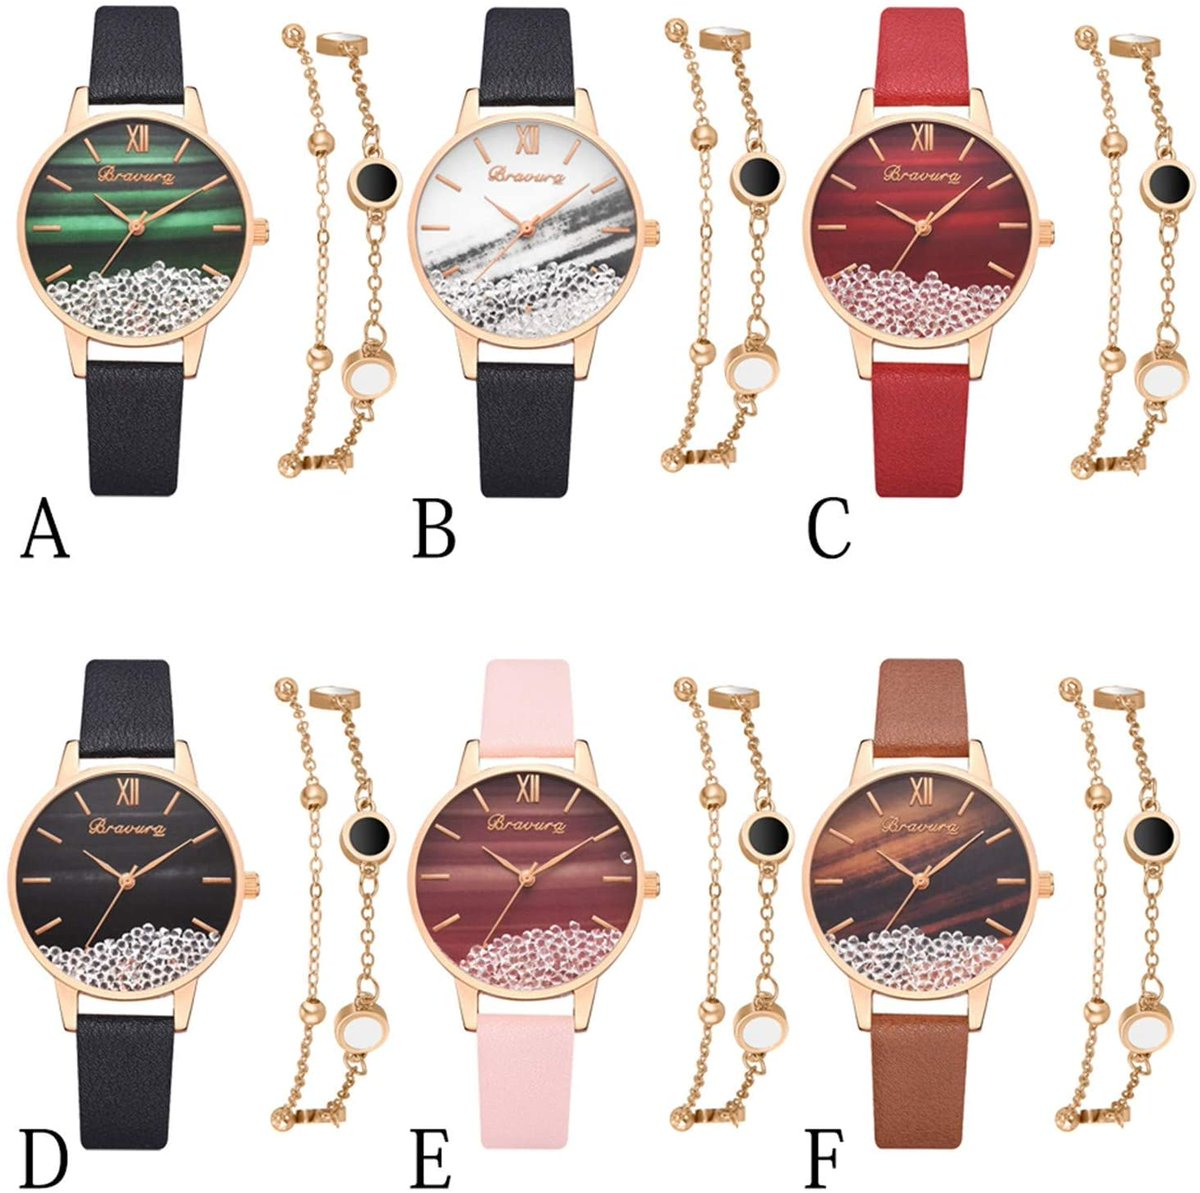 70 percent 0ff with c0de:  ZTONI89R - SILVER OR GOLD CHOICES  Watch Bracelet Set, Business Casual Watch Womens Wristwatch Bangle Jewelry Set for Girls Ladies Fashion Watches Bracelet Kit #ad